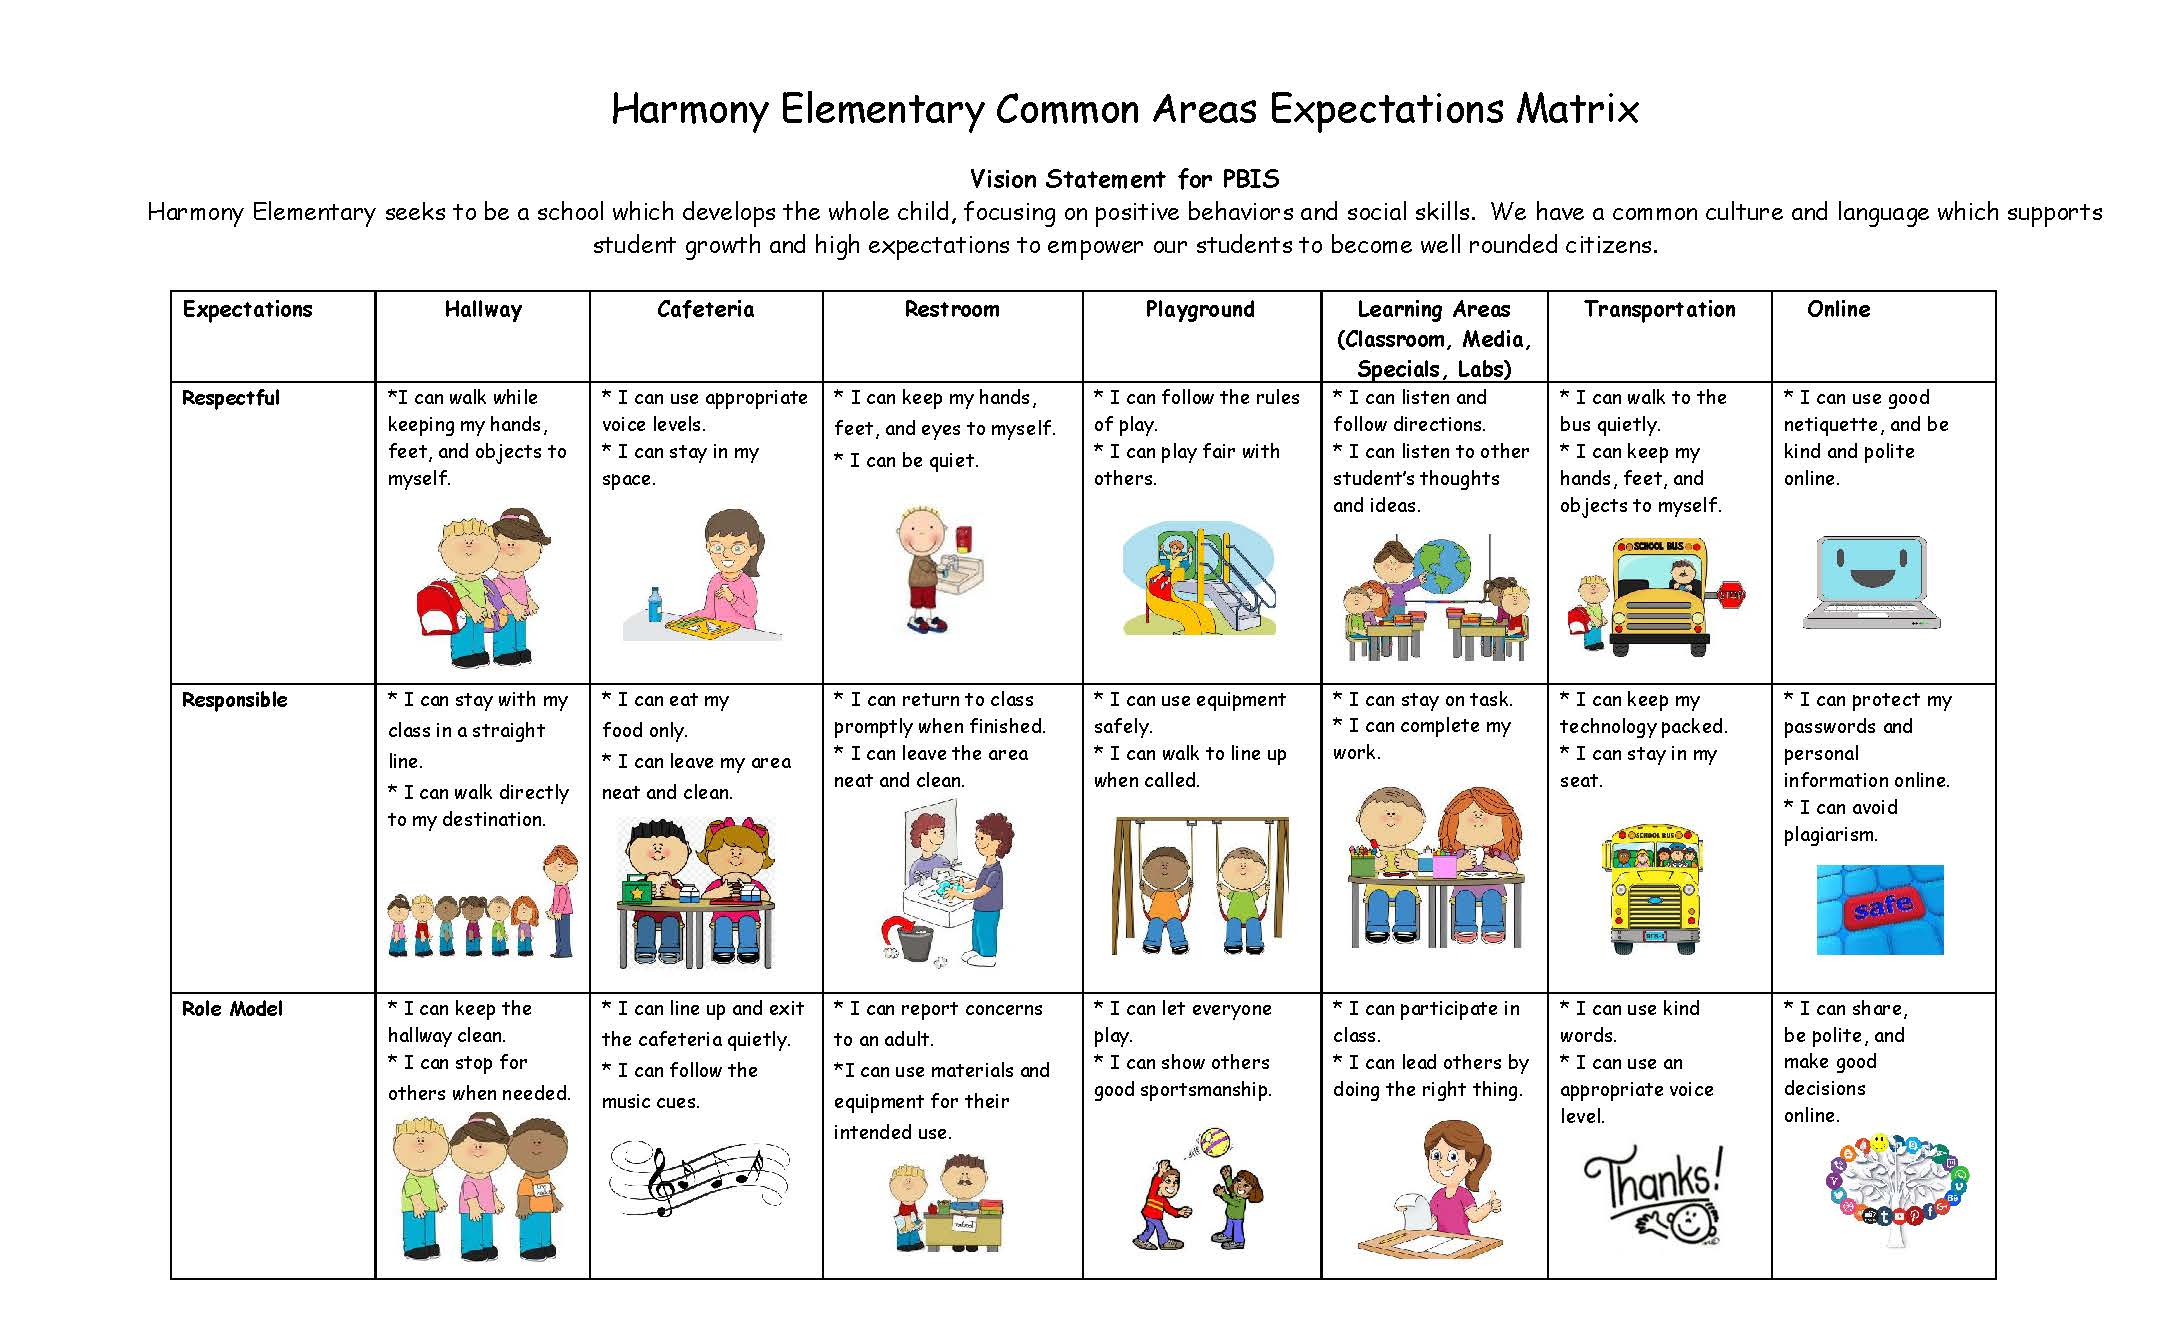 Harmony Elementary Common Areas Expectation Matrix